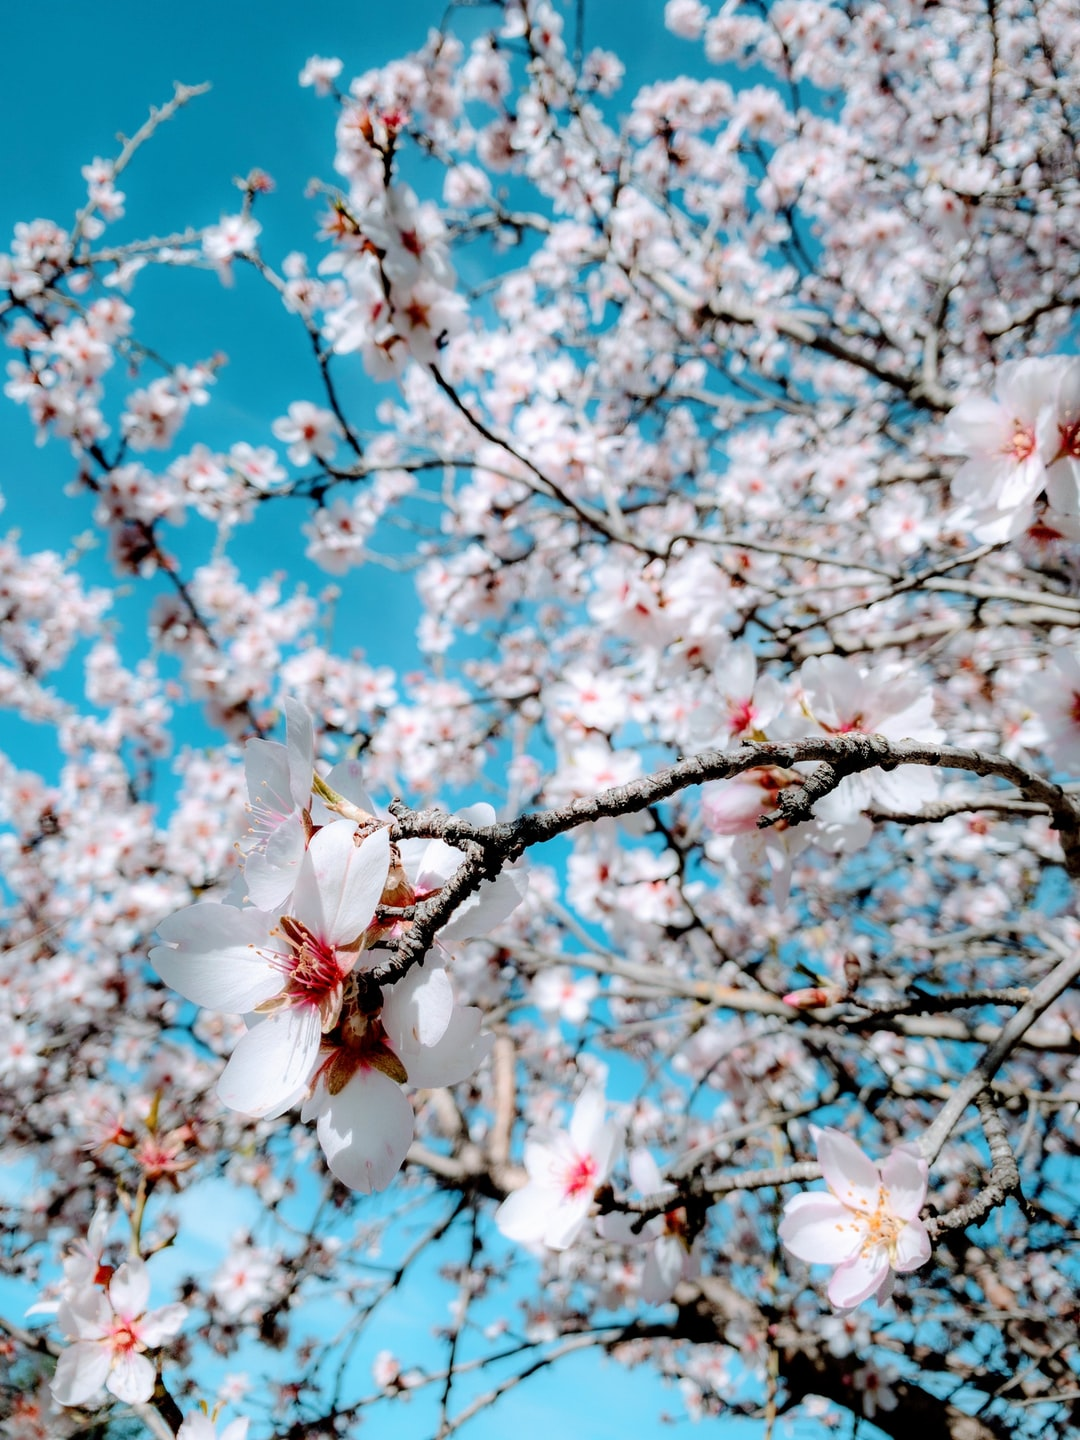 Apricot tree in full blossom